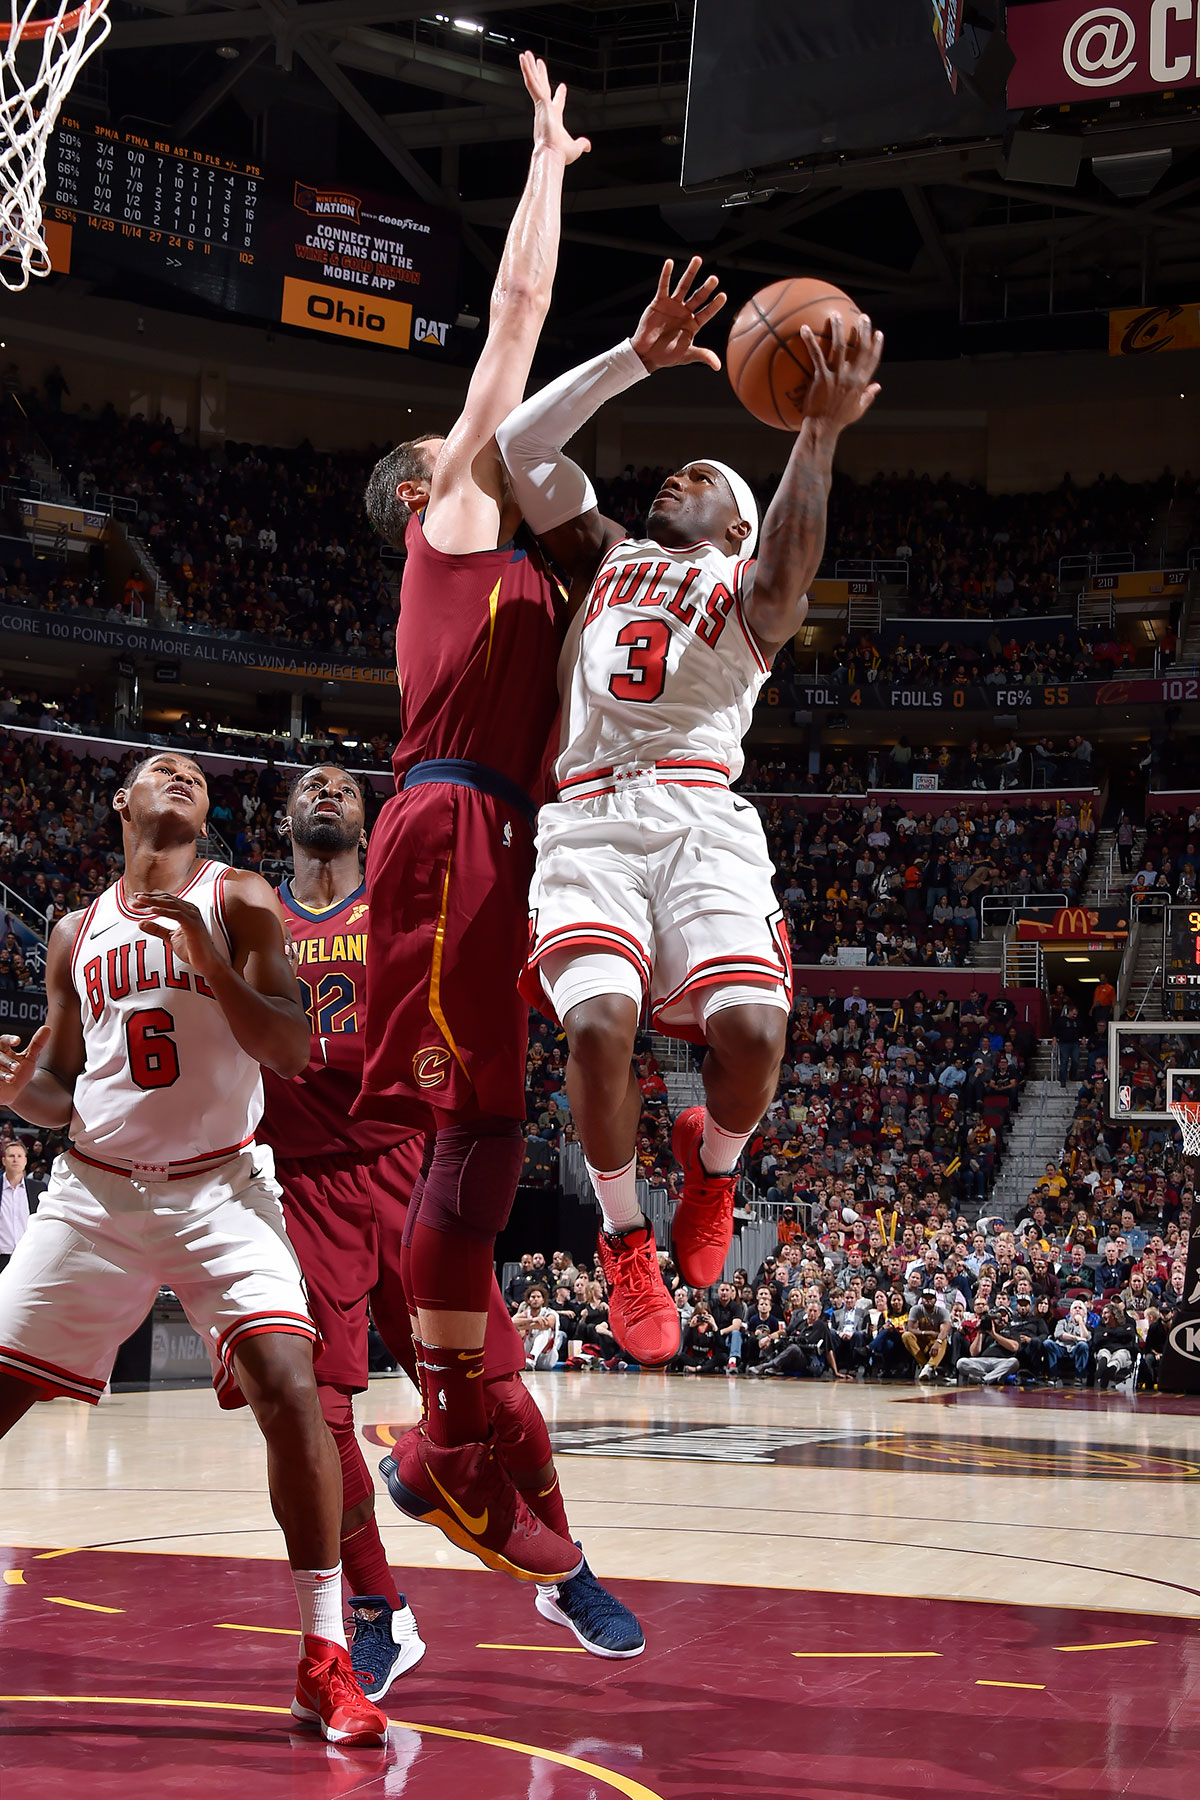 Kay Felder #3 of the Chicago Bulls drives to the basket against the Cleveland Cavaliers on October 24, 2017 at Quicken Loans Arena in Cleveland, Ohio.